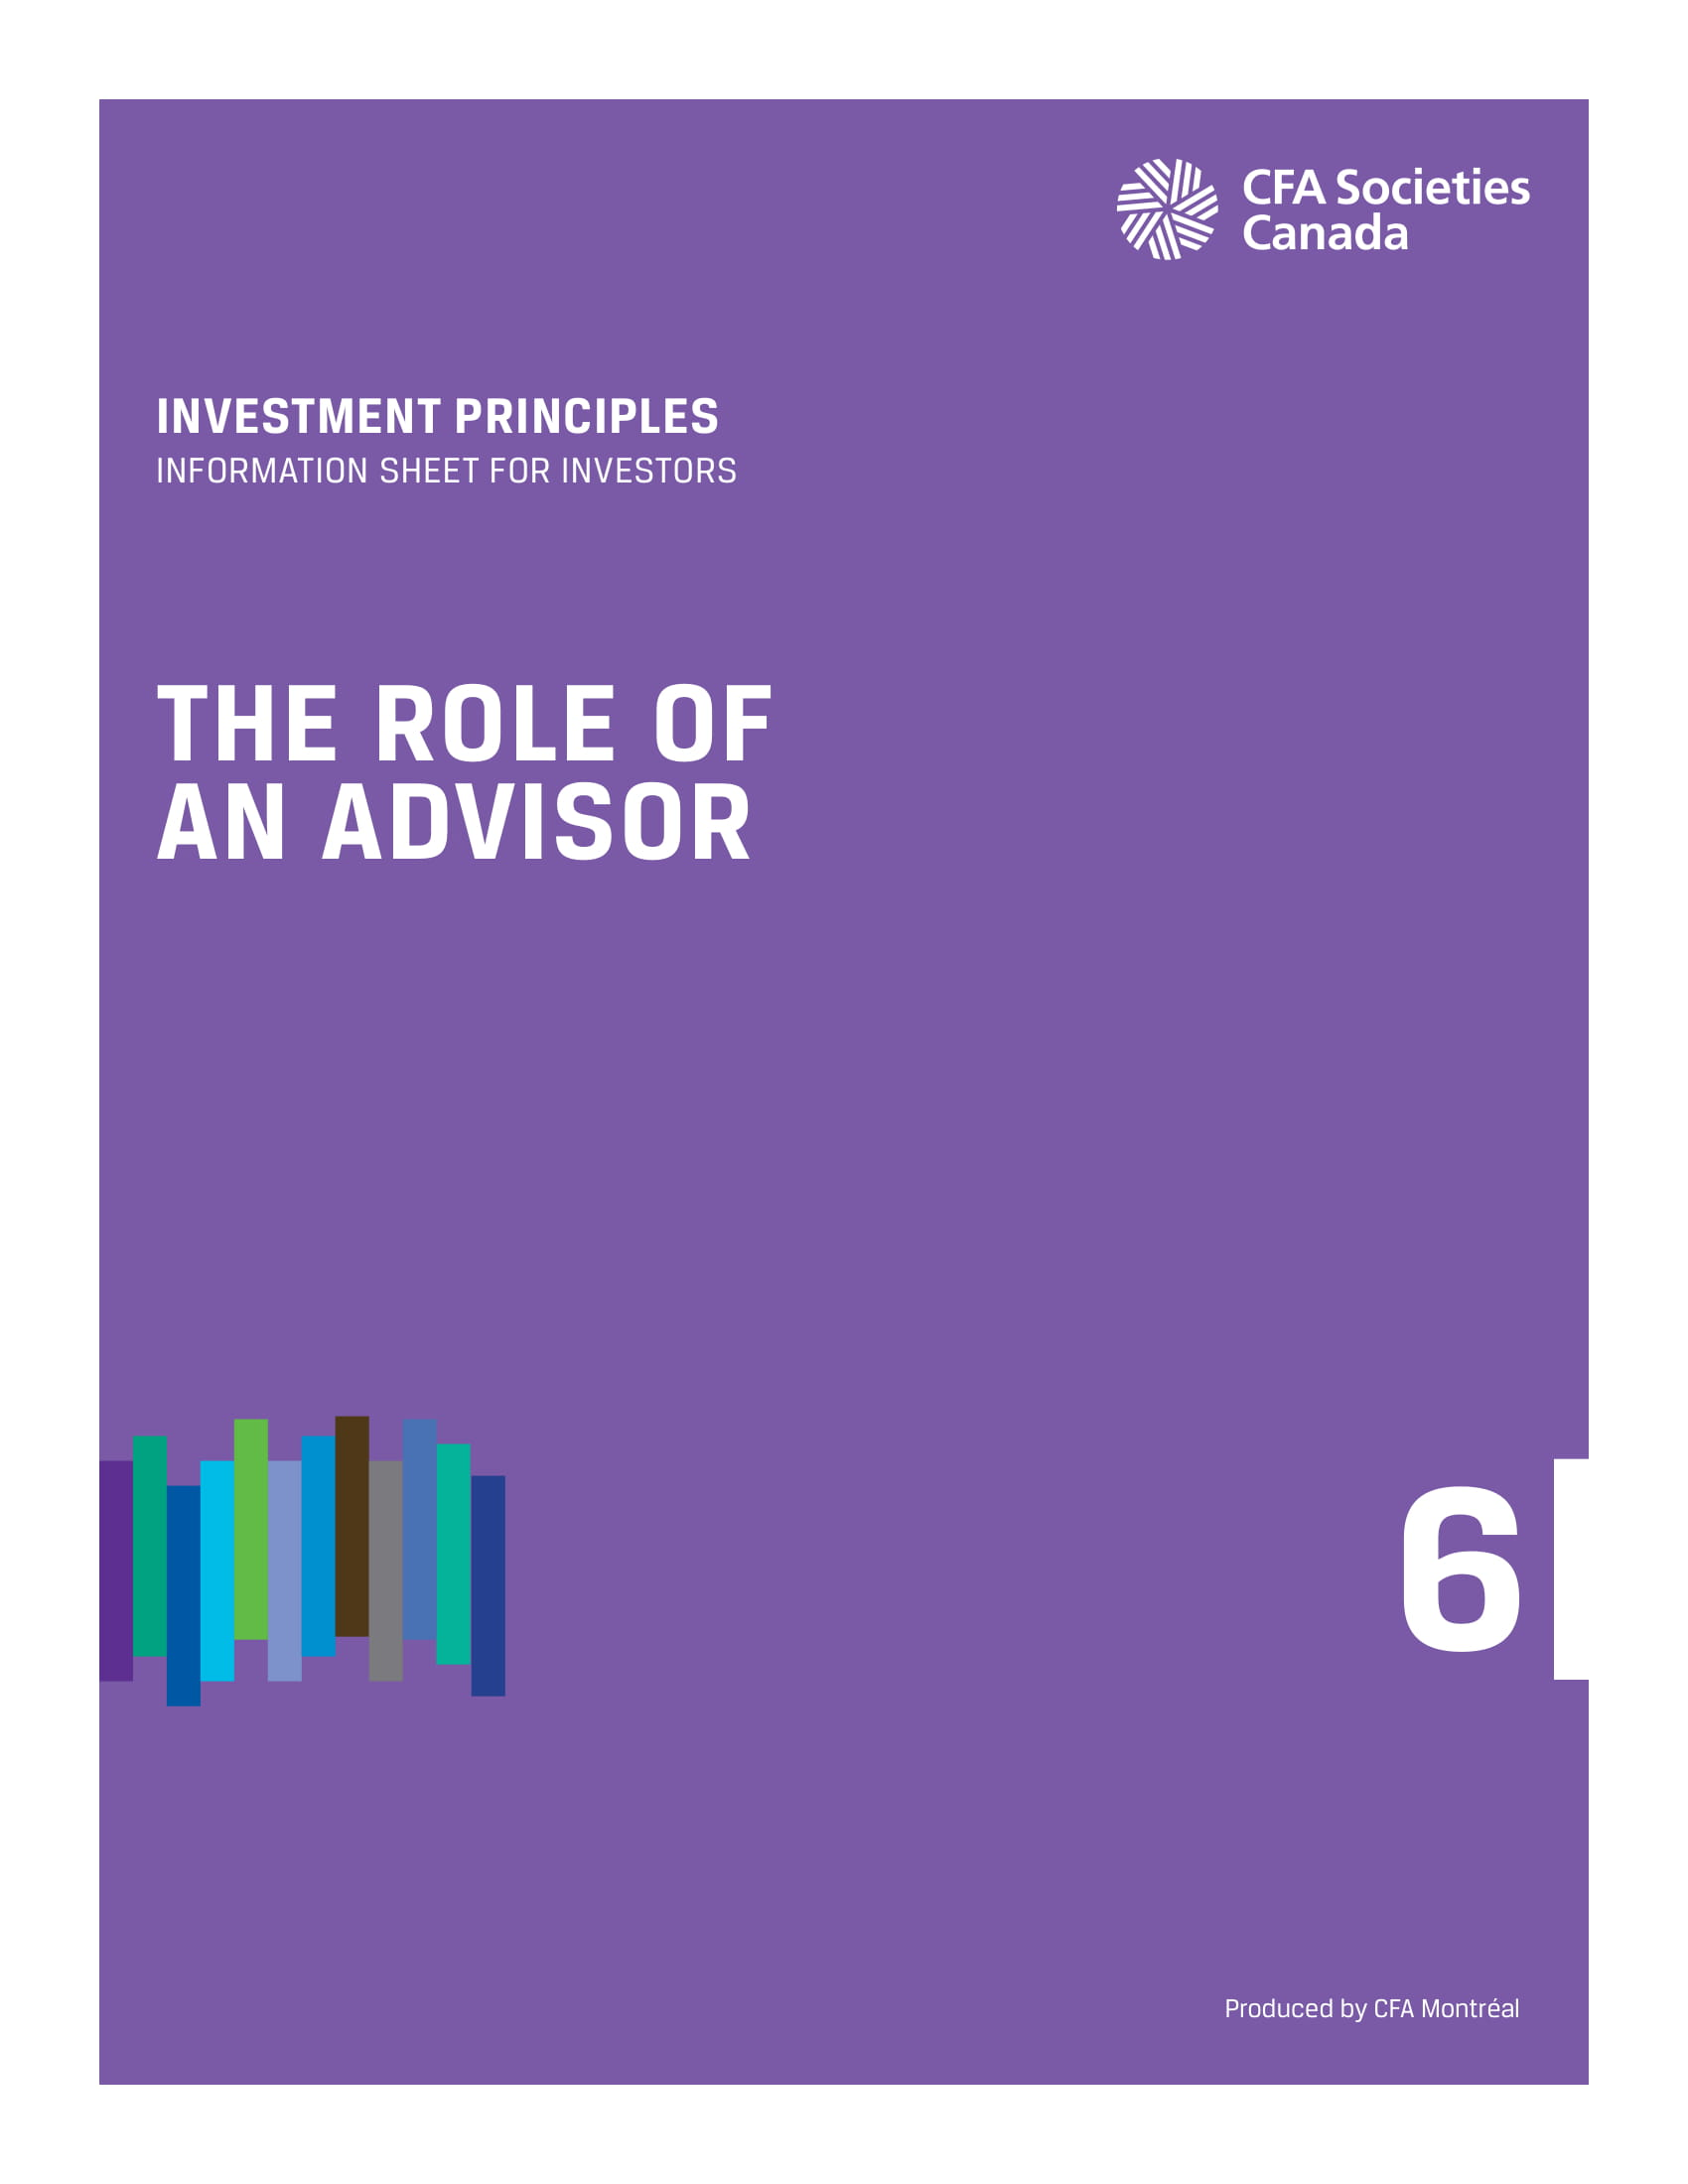 6. Investors - The Role of an Advisor_p1-1-1.jpg